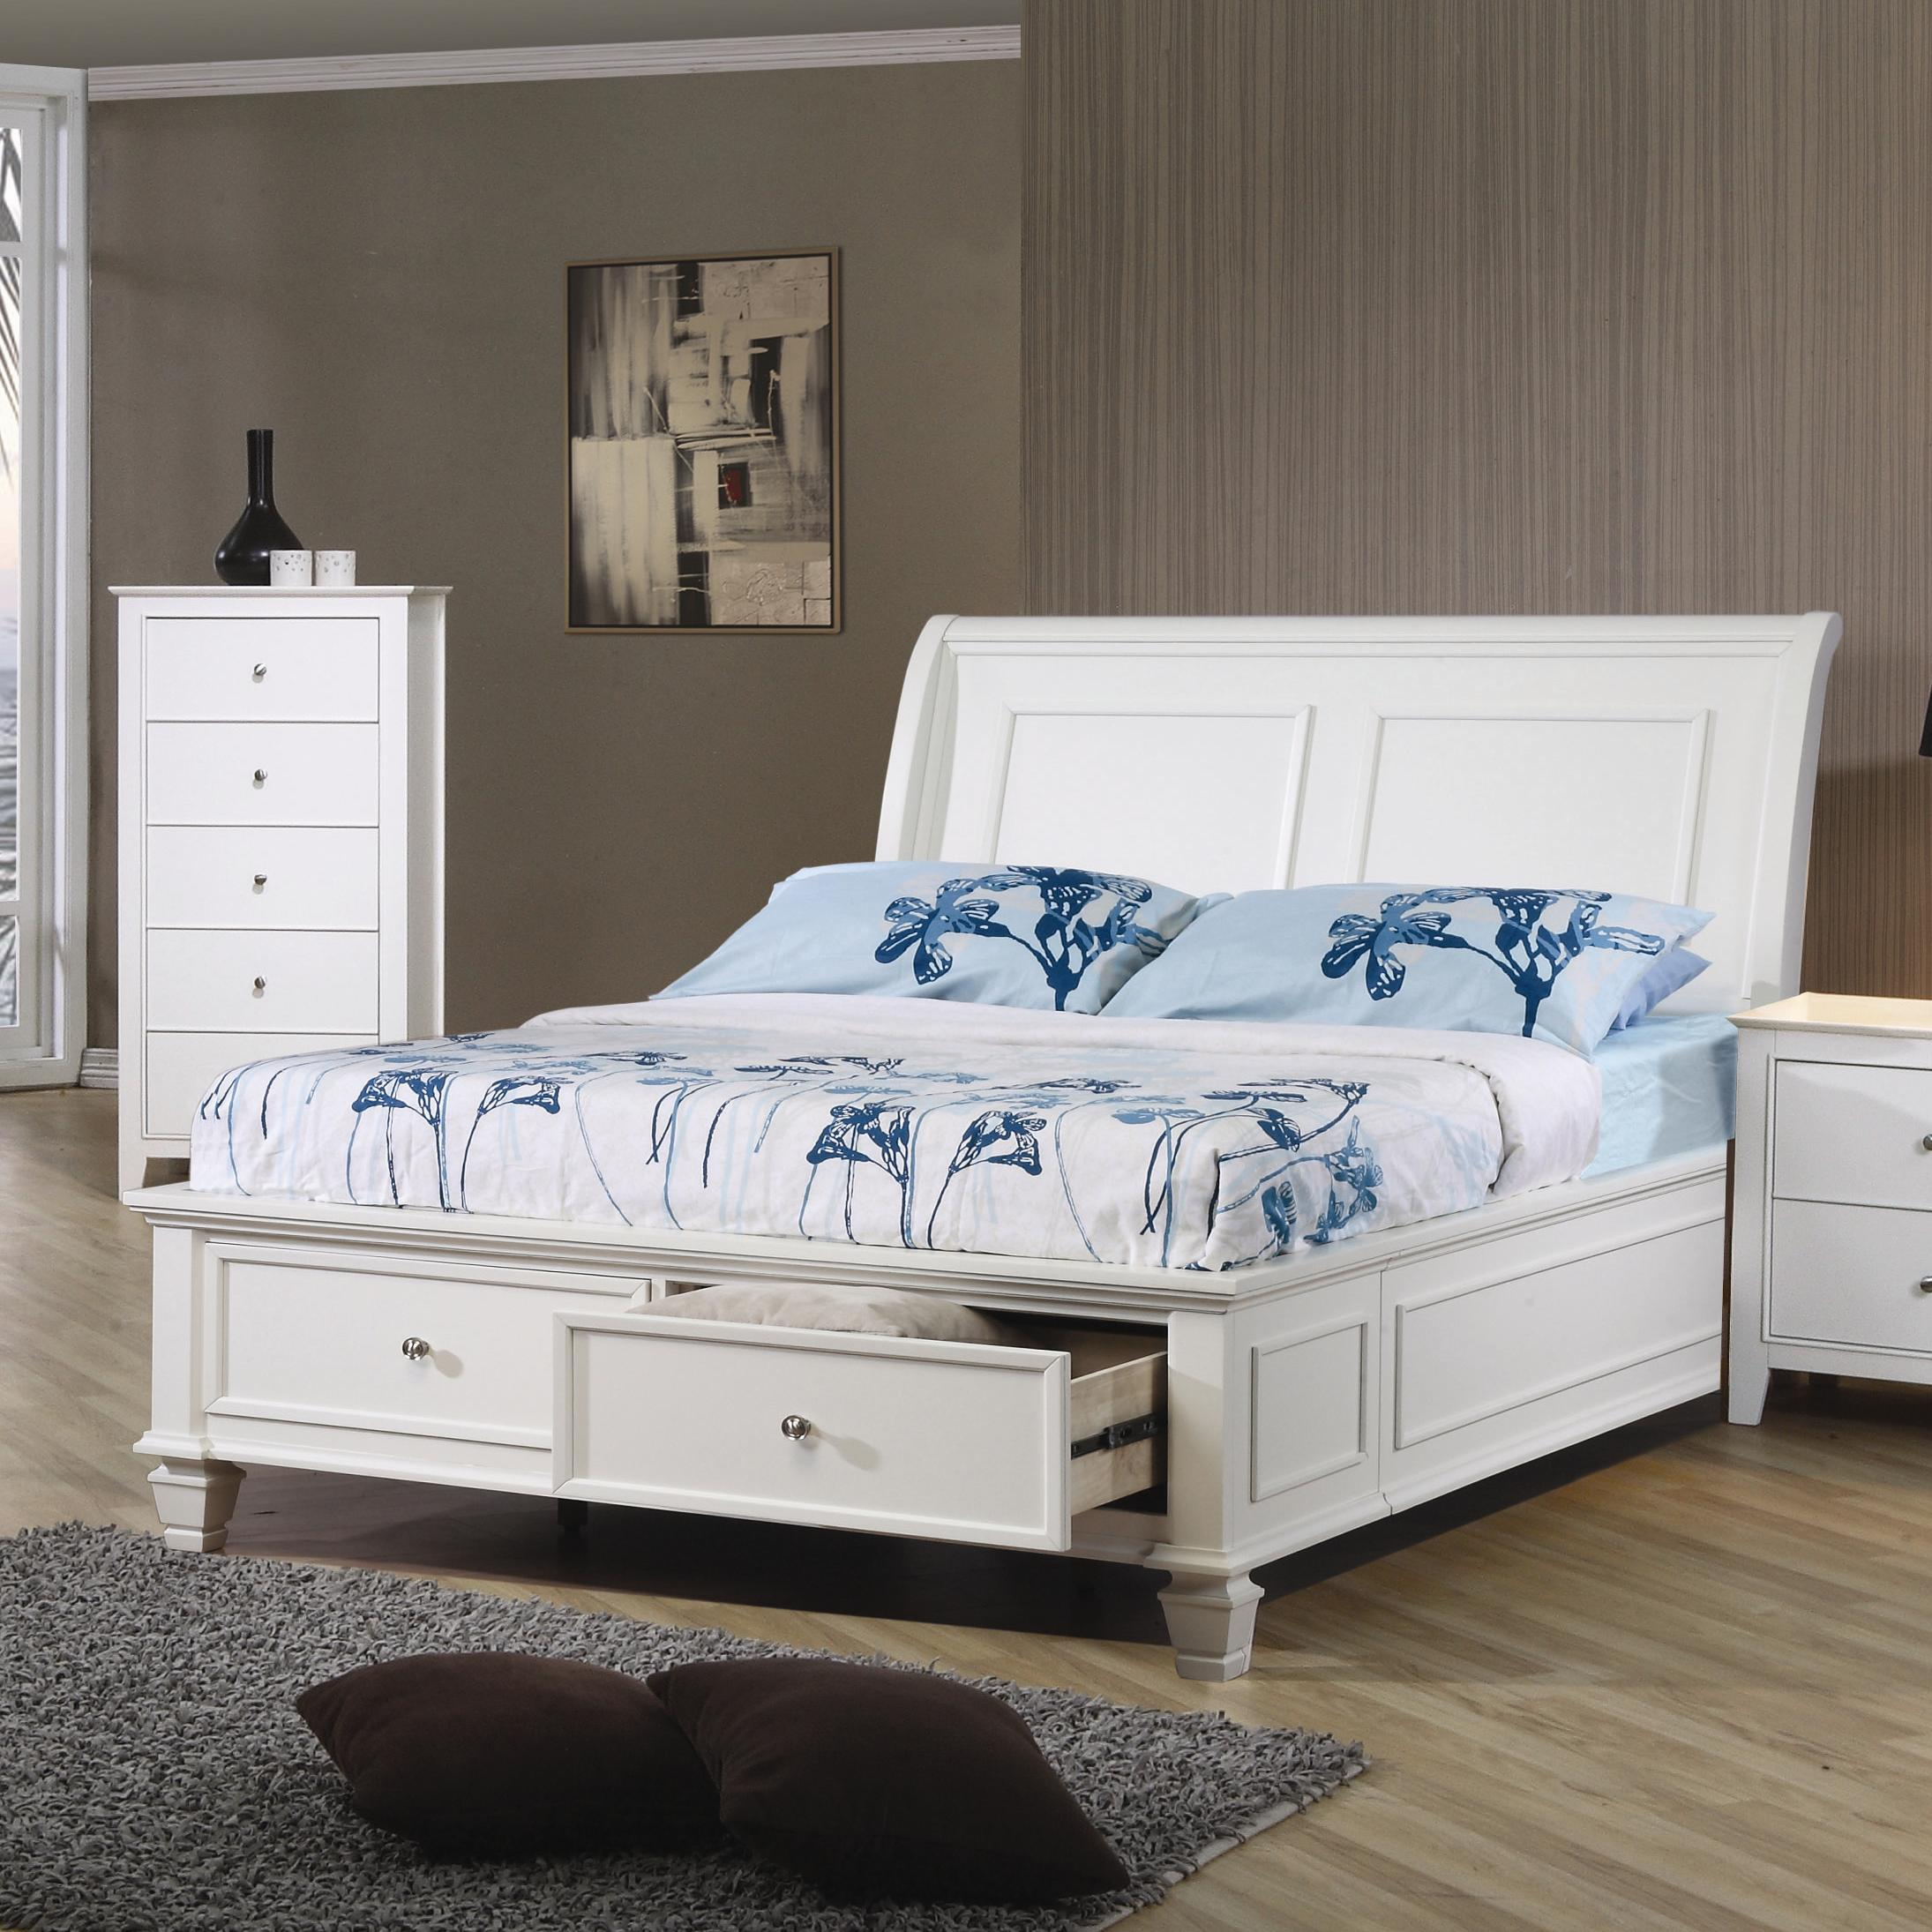 Sandy Beach Full Sleigh Bed by Coaster at Rooms for Less